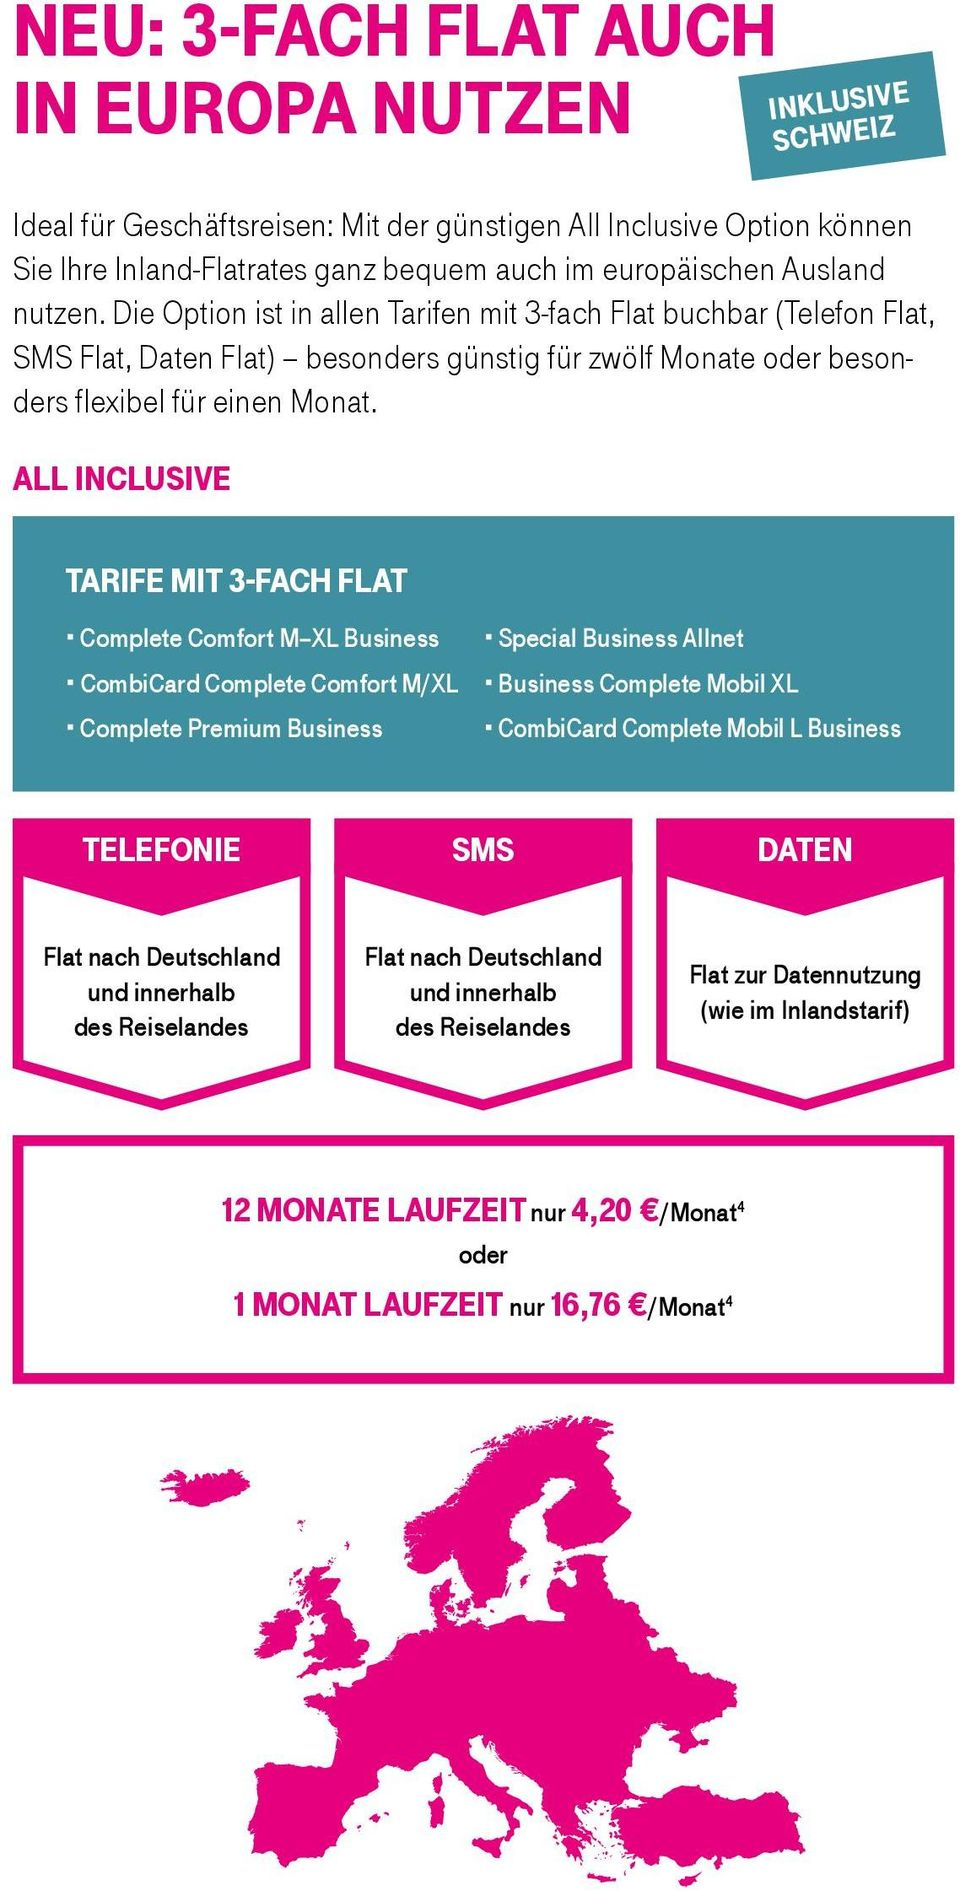 ALL INCLUSIVE Inklusive Schweiz Tarife mit 3-fach Flat Complete Comfort M XL Business CombiCard Complete Comfort M/XL Complete Premium Business Special Business Allnet Business Complete Mobil XL